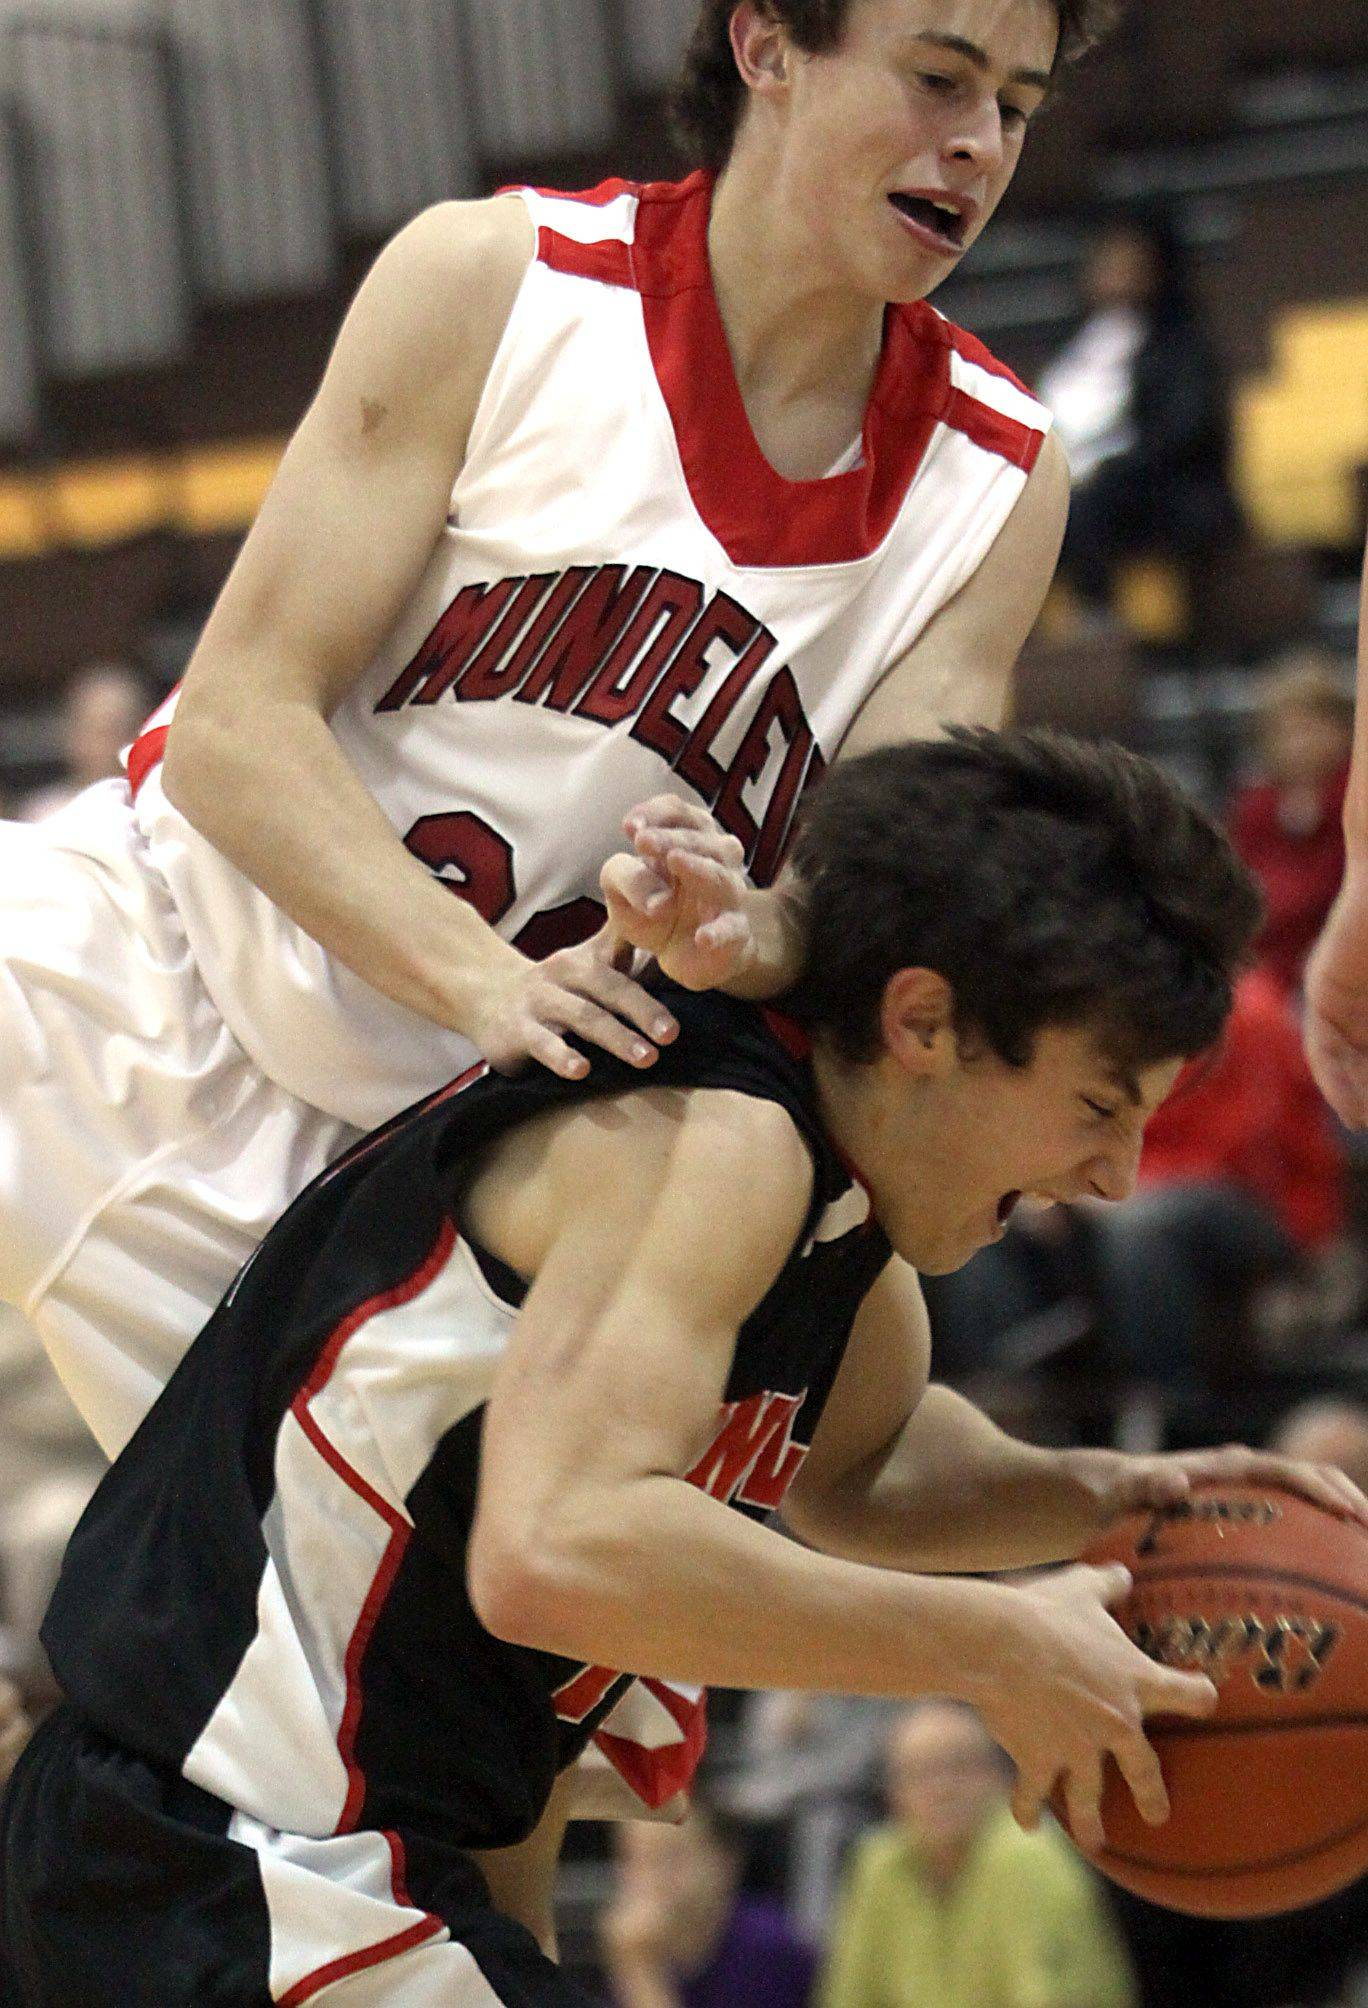 Patrick Kunzer/pkunzer@dailyherald.com Jake Dachman of Huntley, bottom, tries to keep a handle on the basketball as Nate Brune of Mundelein plays defense during the title game of the Jacobs Holiday Classic Boys Basketball Tournament in Algonquin on Thursday night.